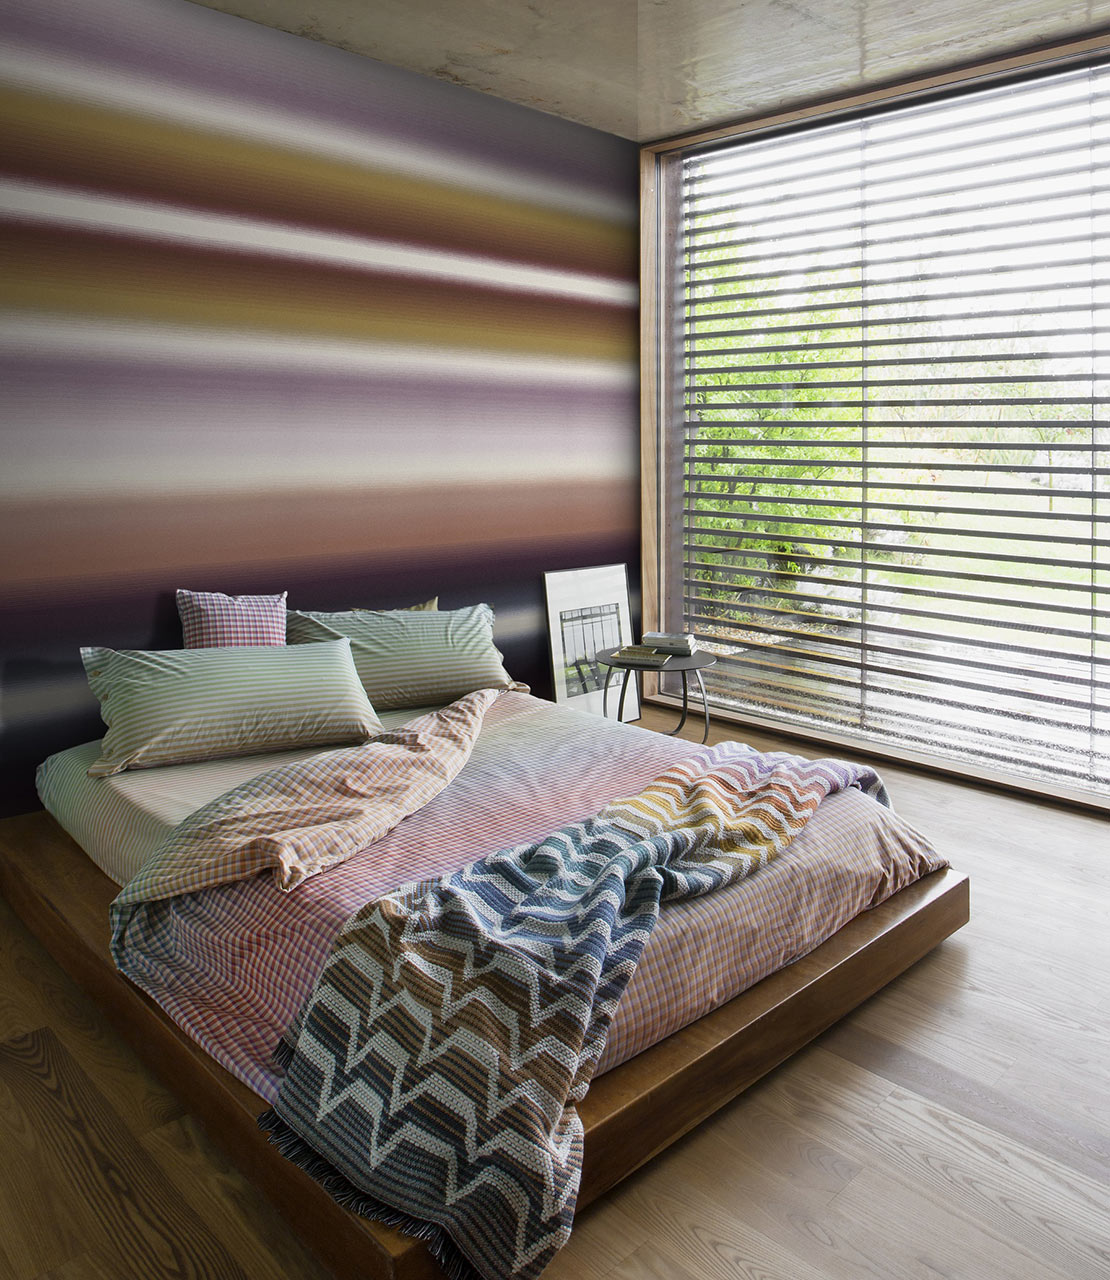 Missoni-JannelliVolpi, Wallcoverings01 MissoniHome